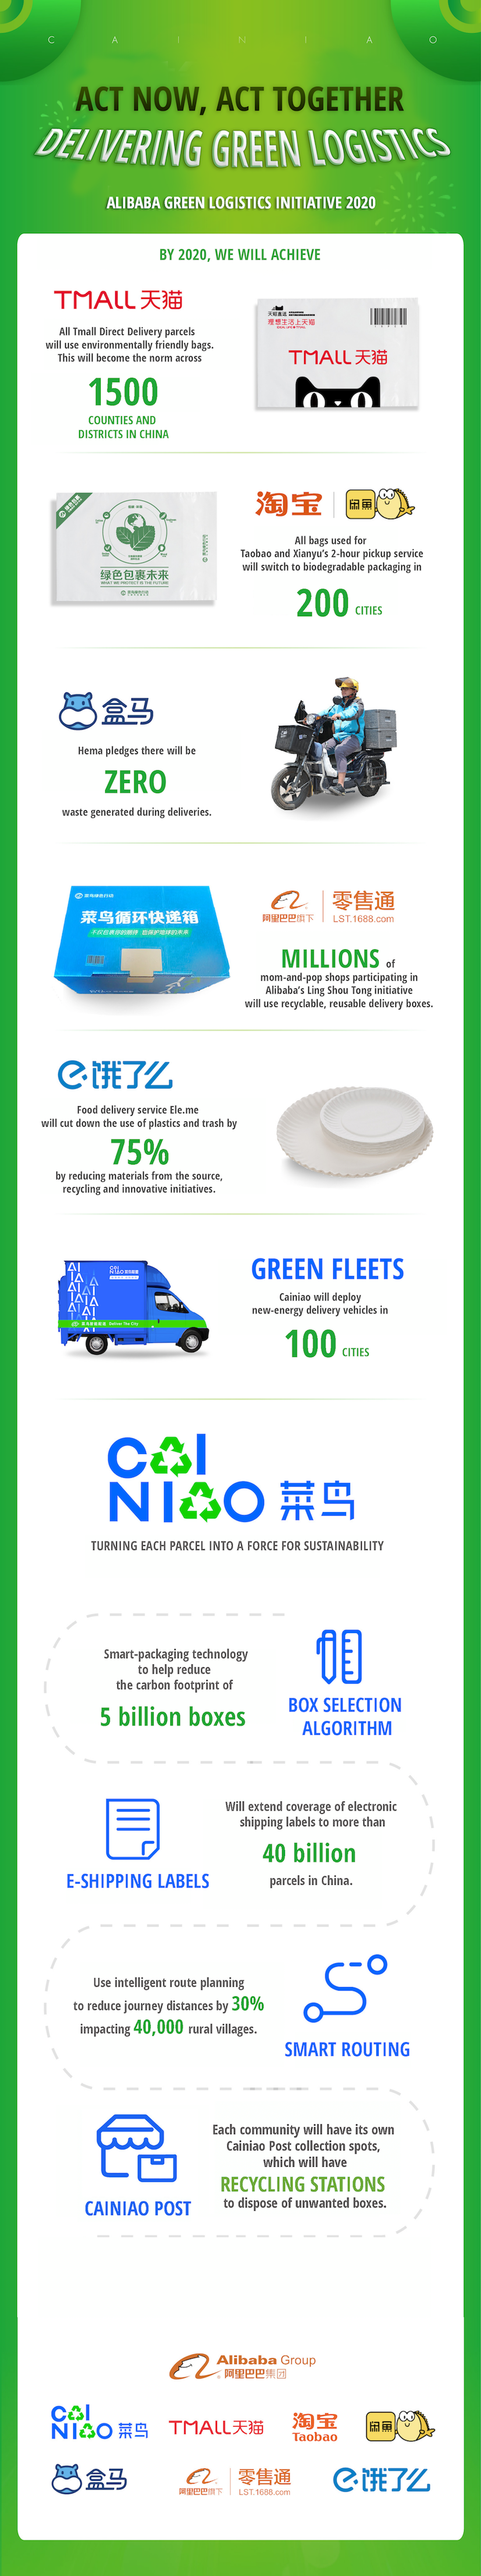 Cainiao green logistics